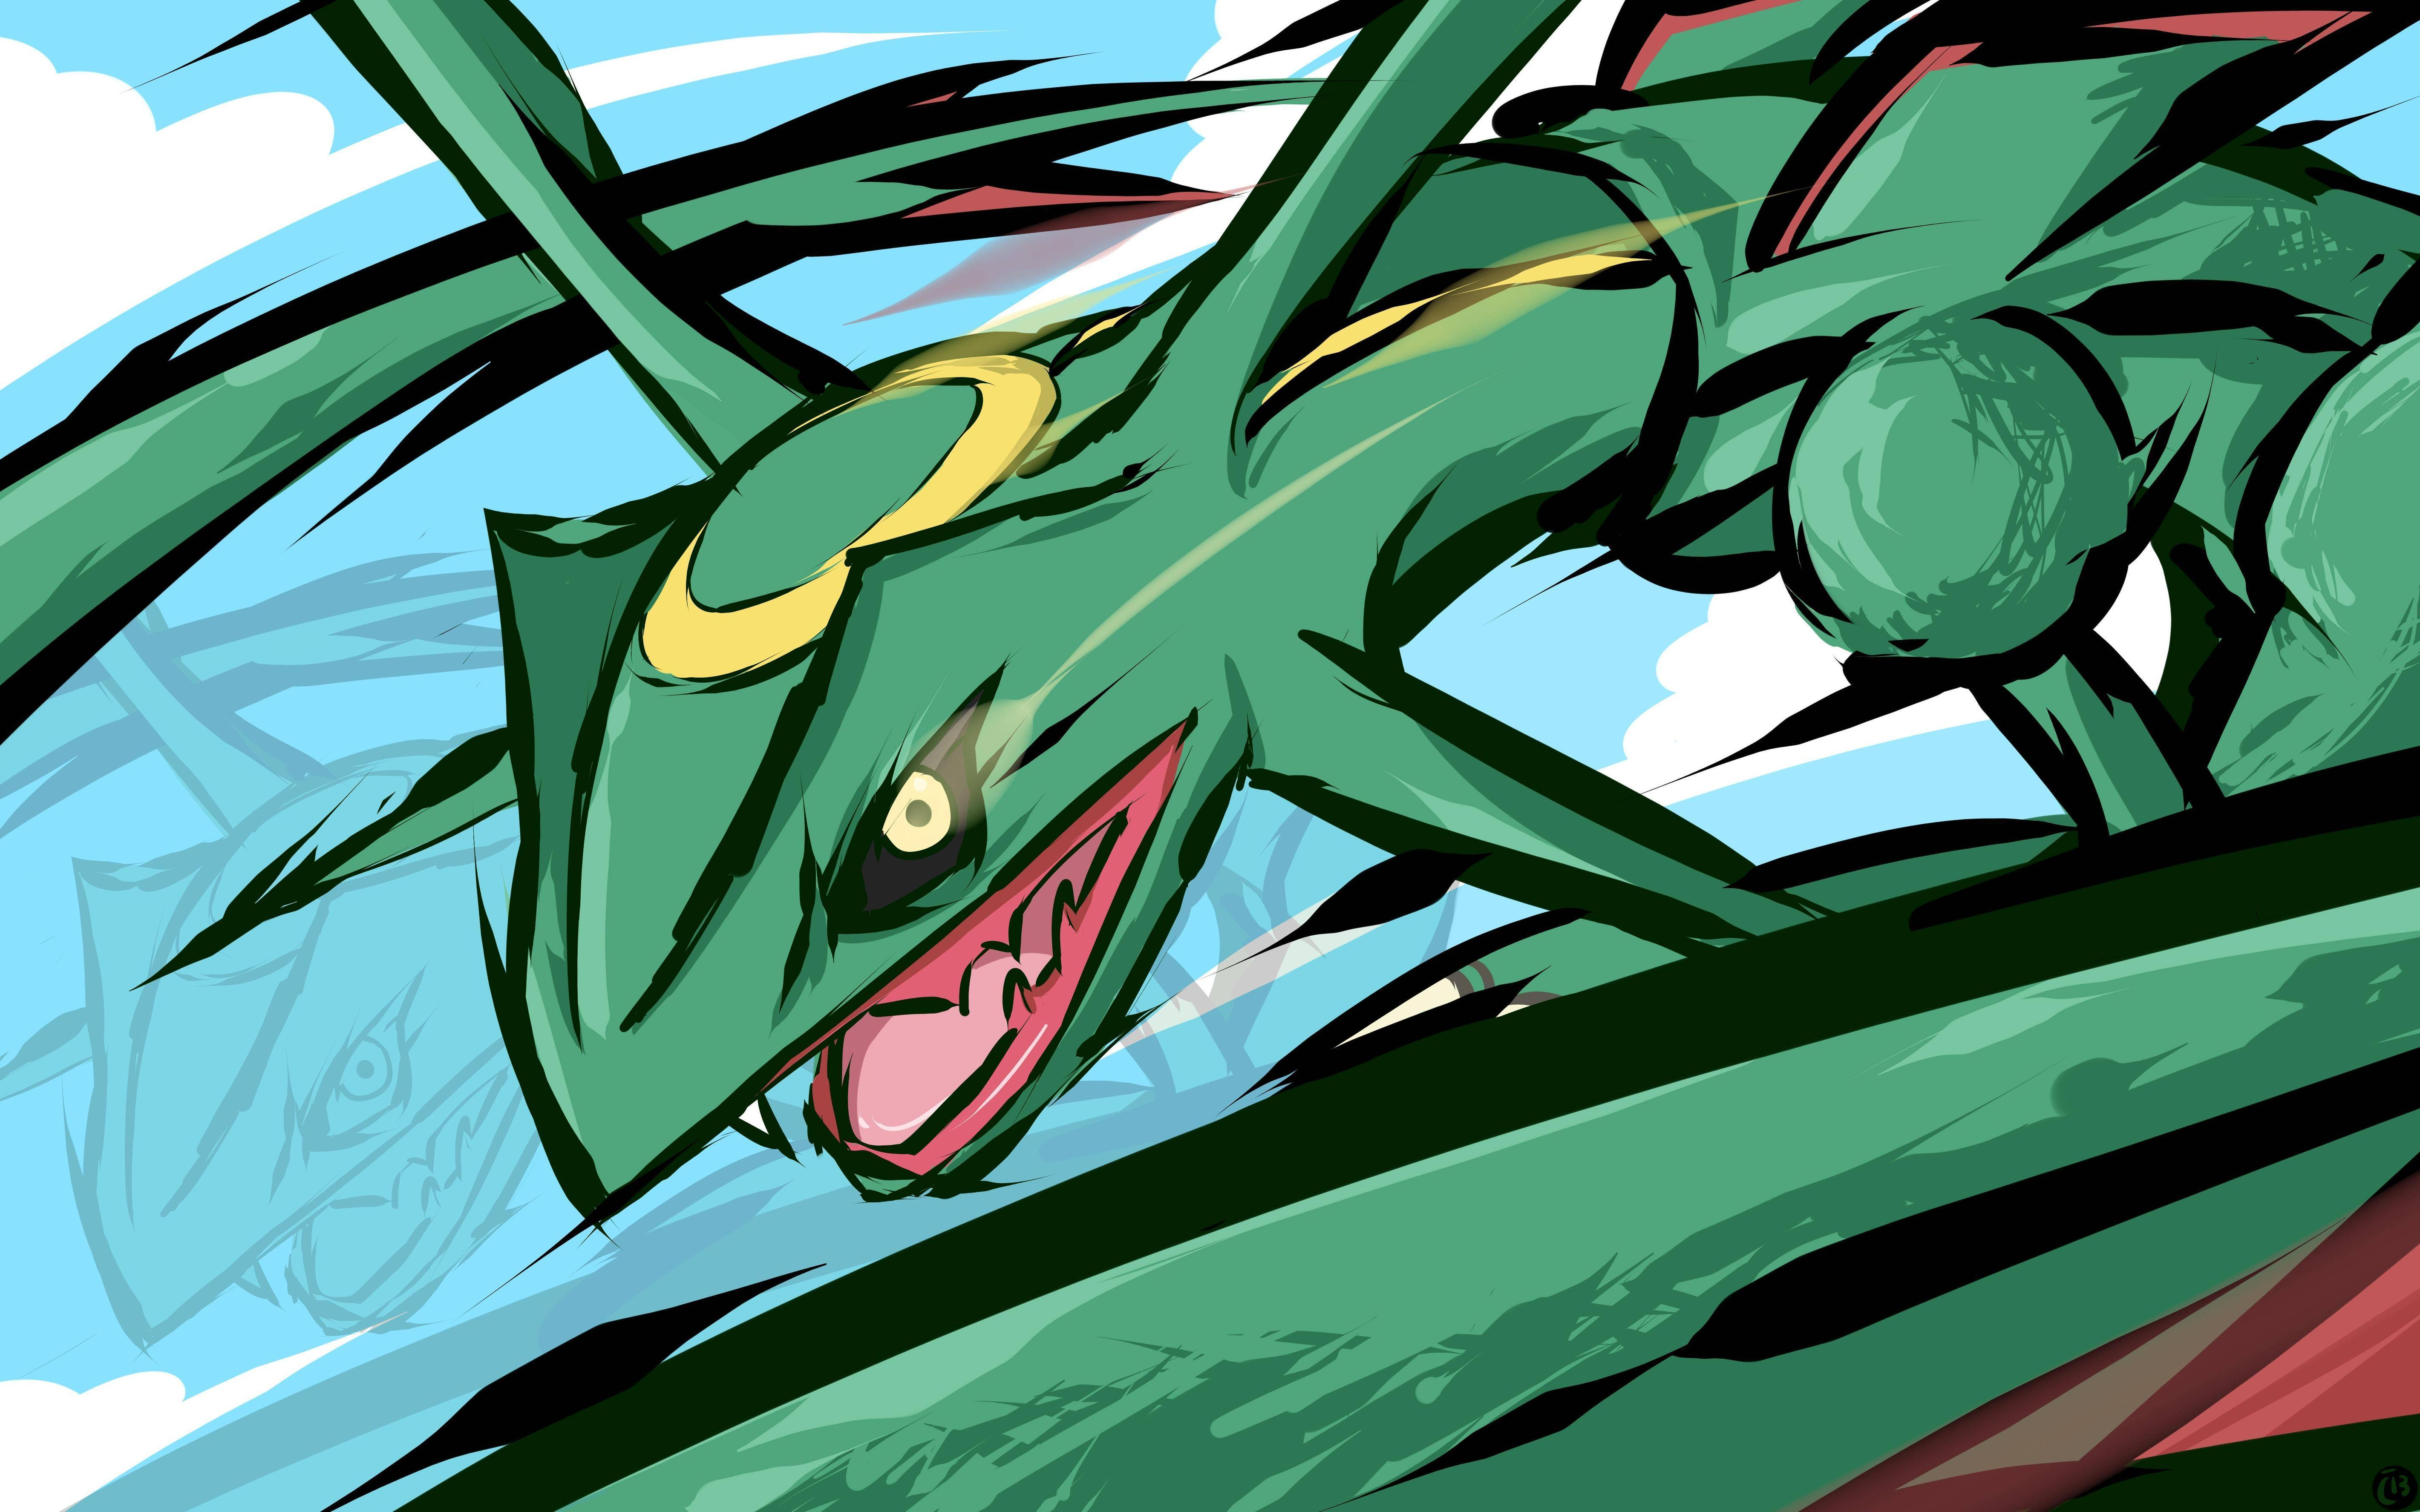 emerald rayquaza wallpapers - photo #22